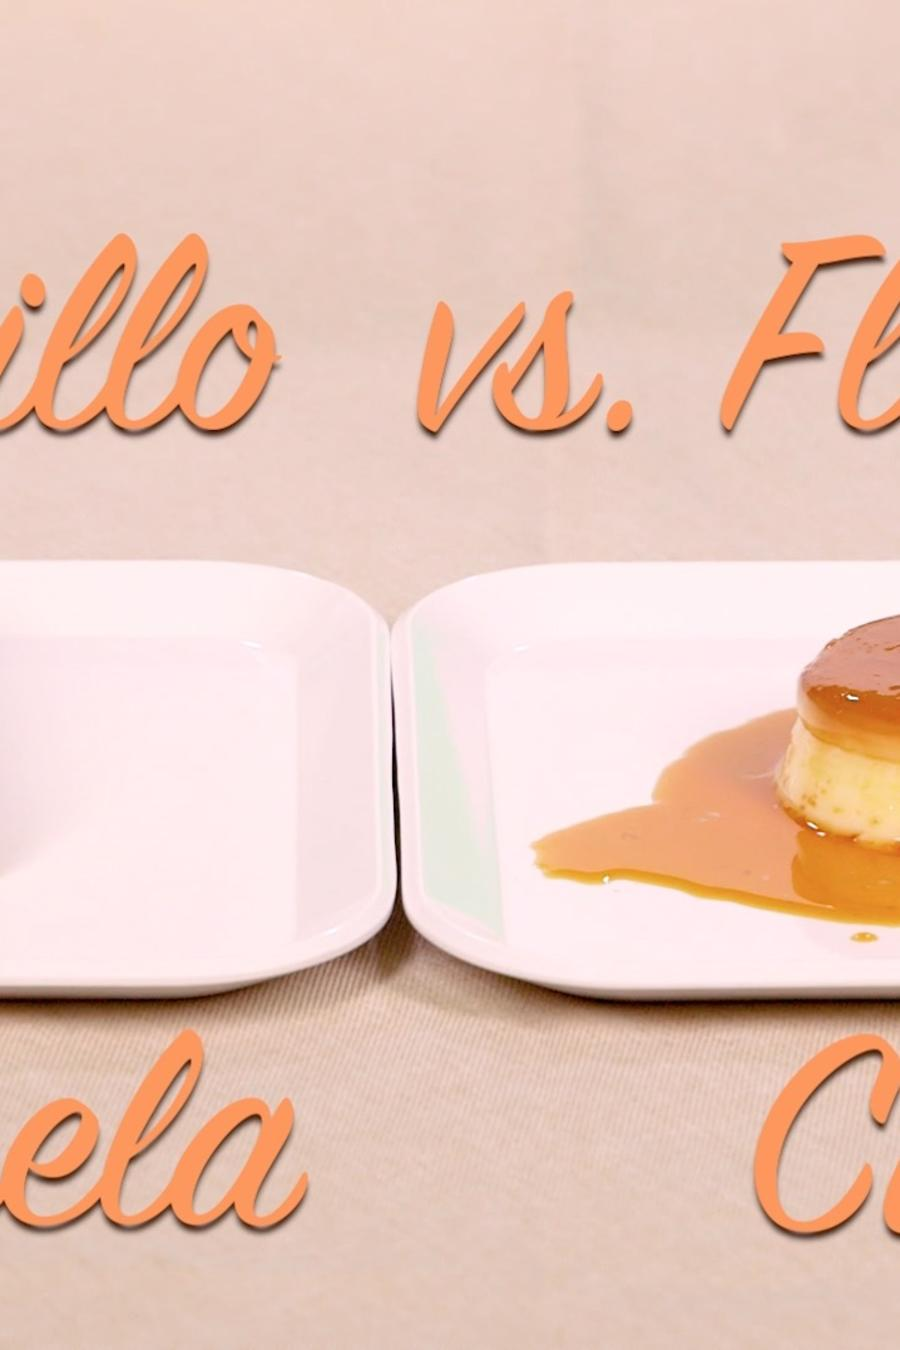 181212_3844866_Taste_of_the_Holidays__Cuban_Flan_vs_Venezue.jpg